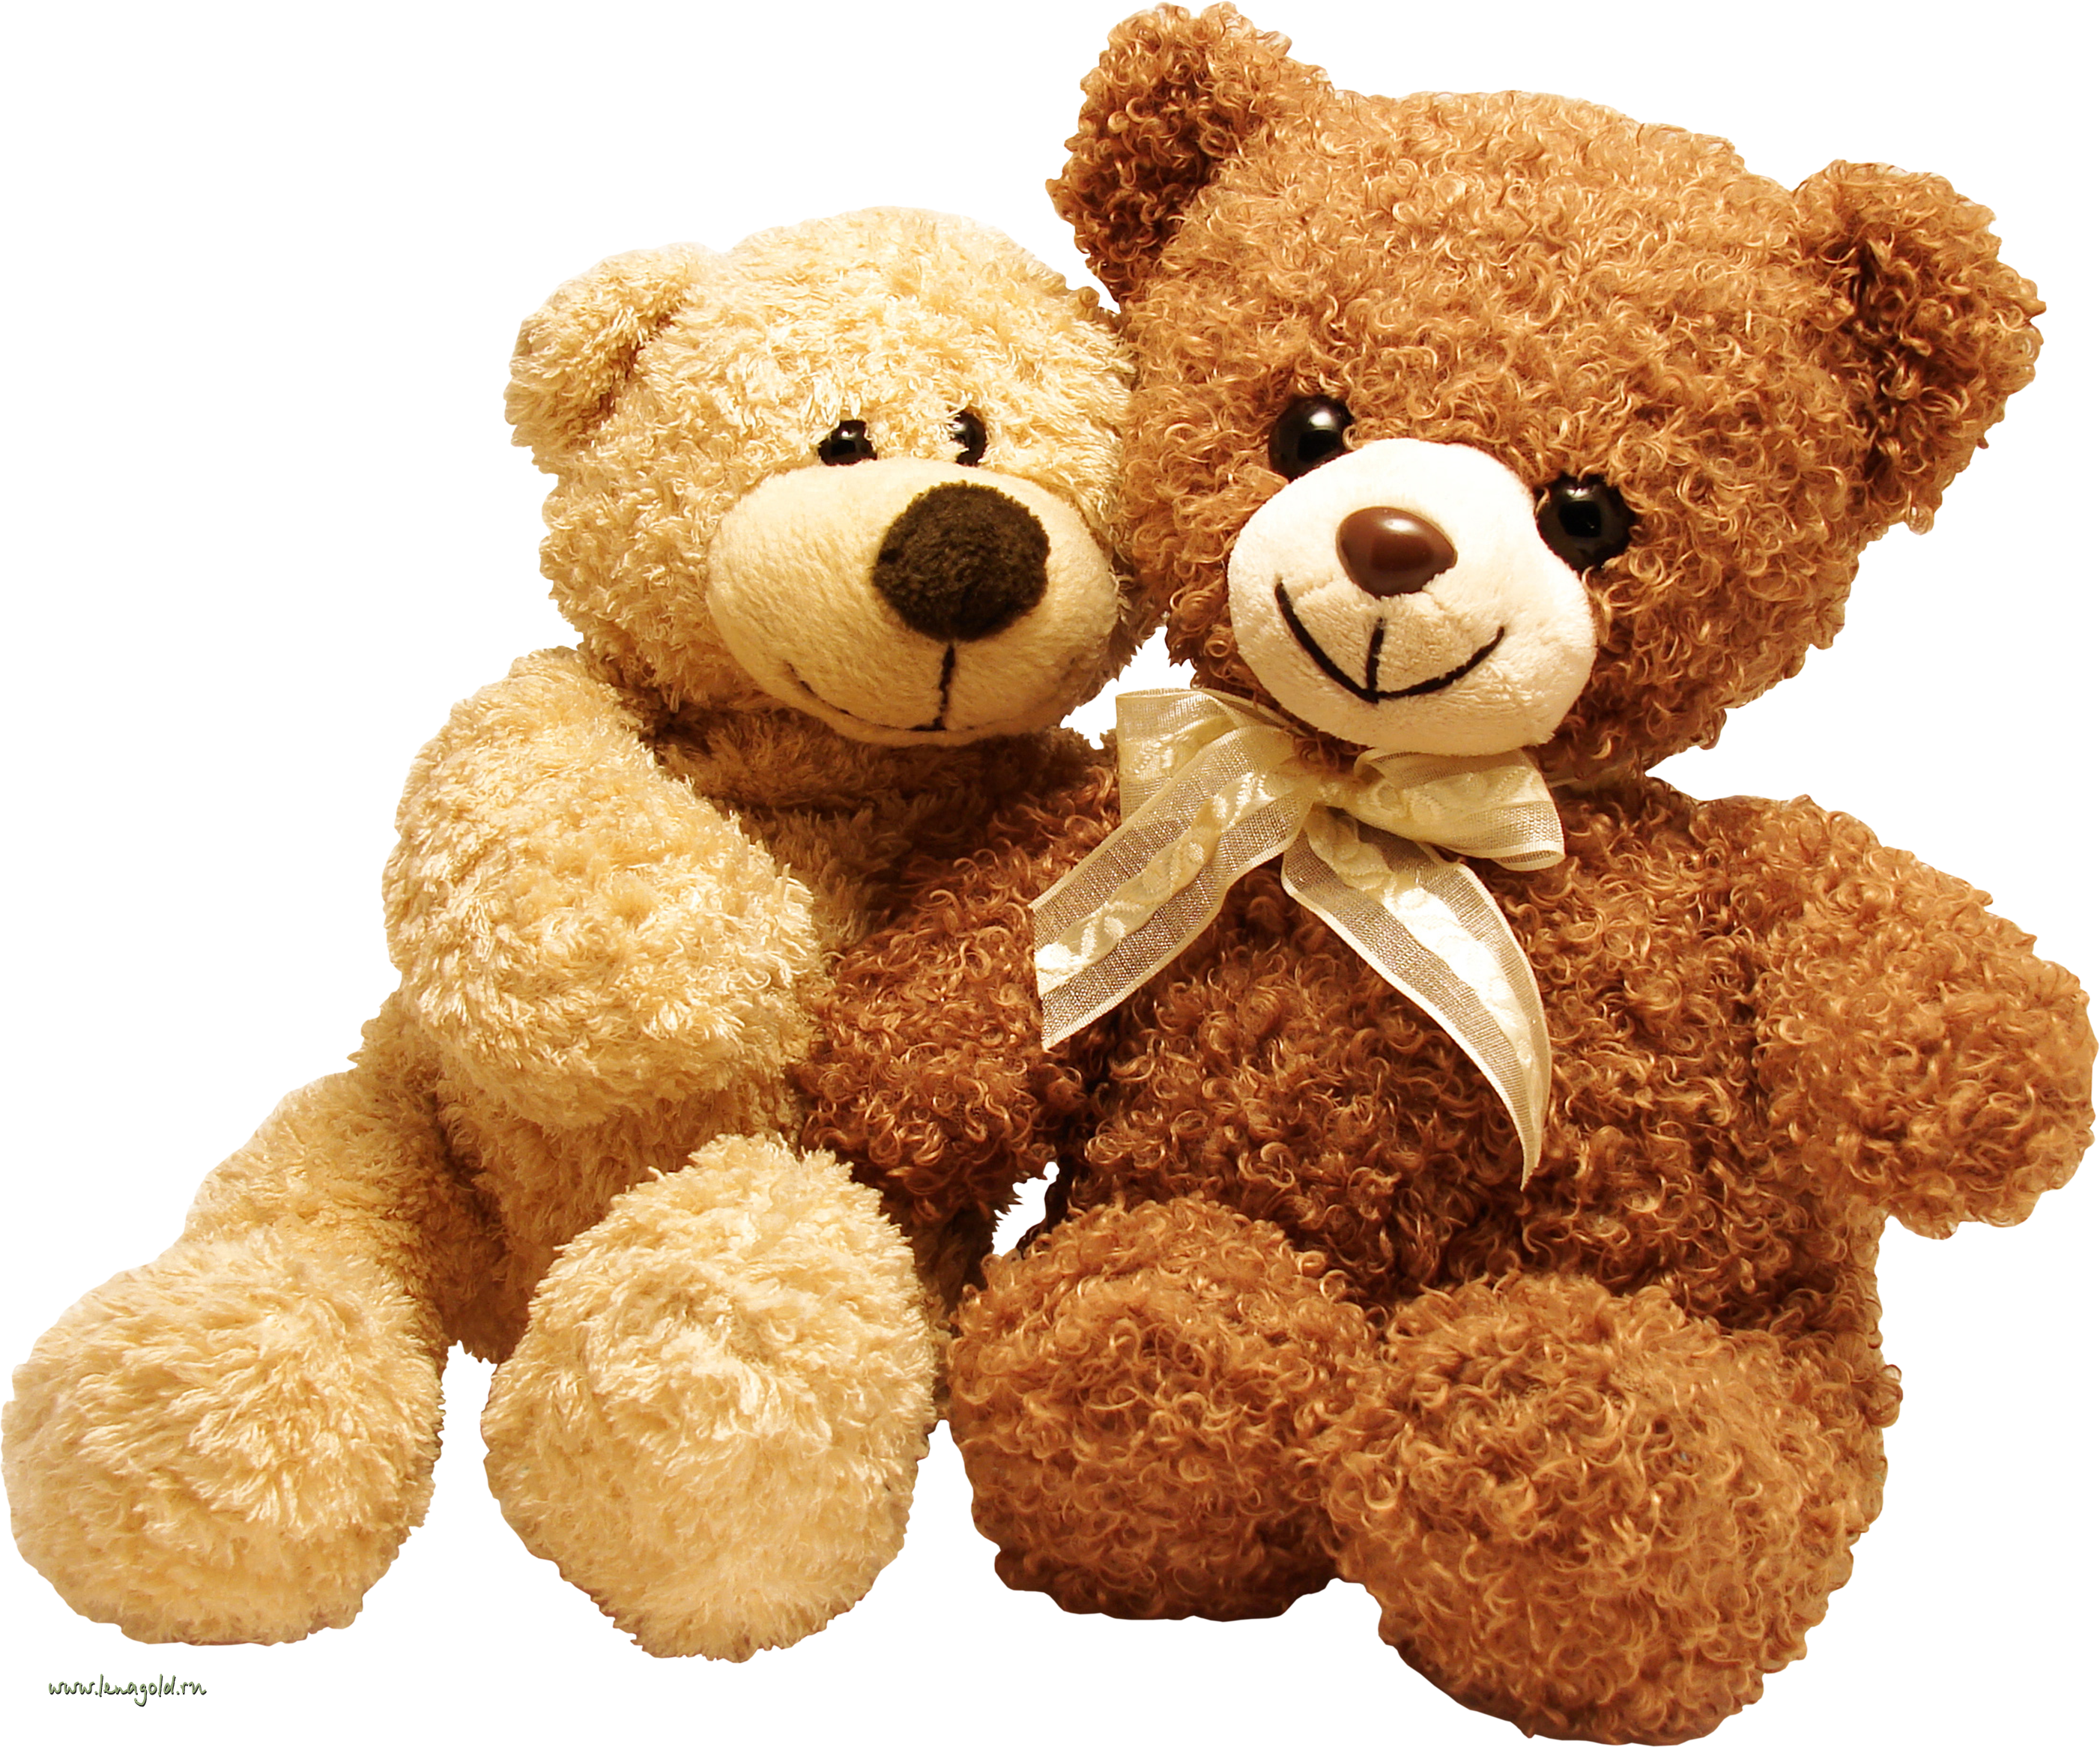 Cute bear png. Teddy transparent free images